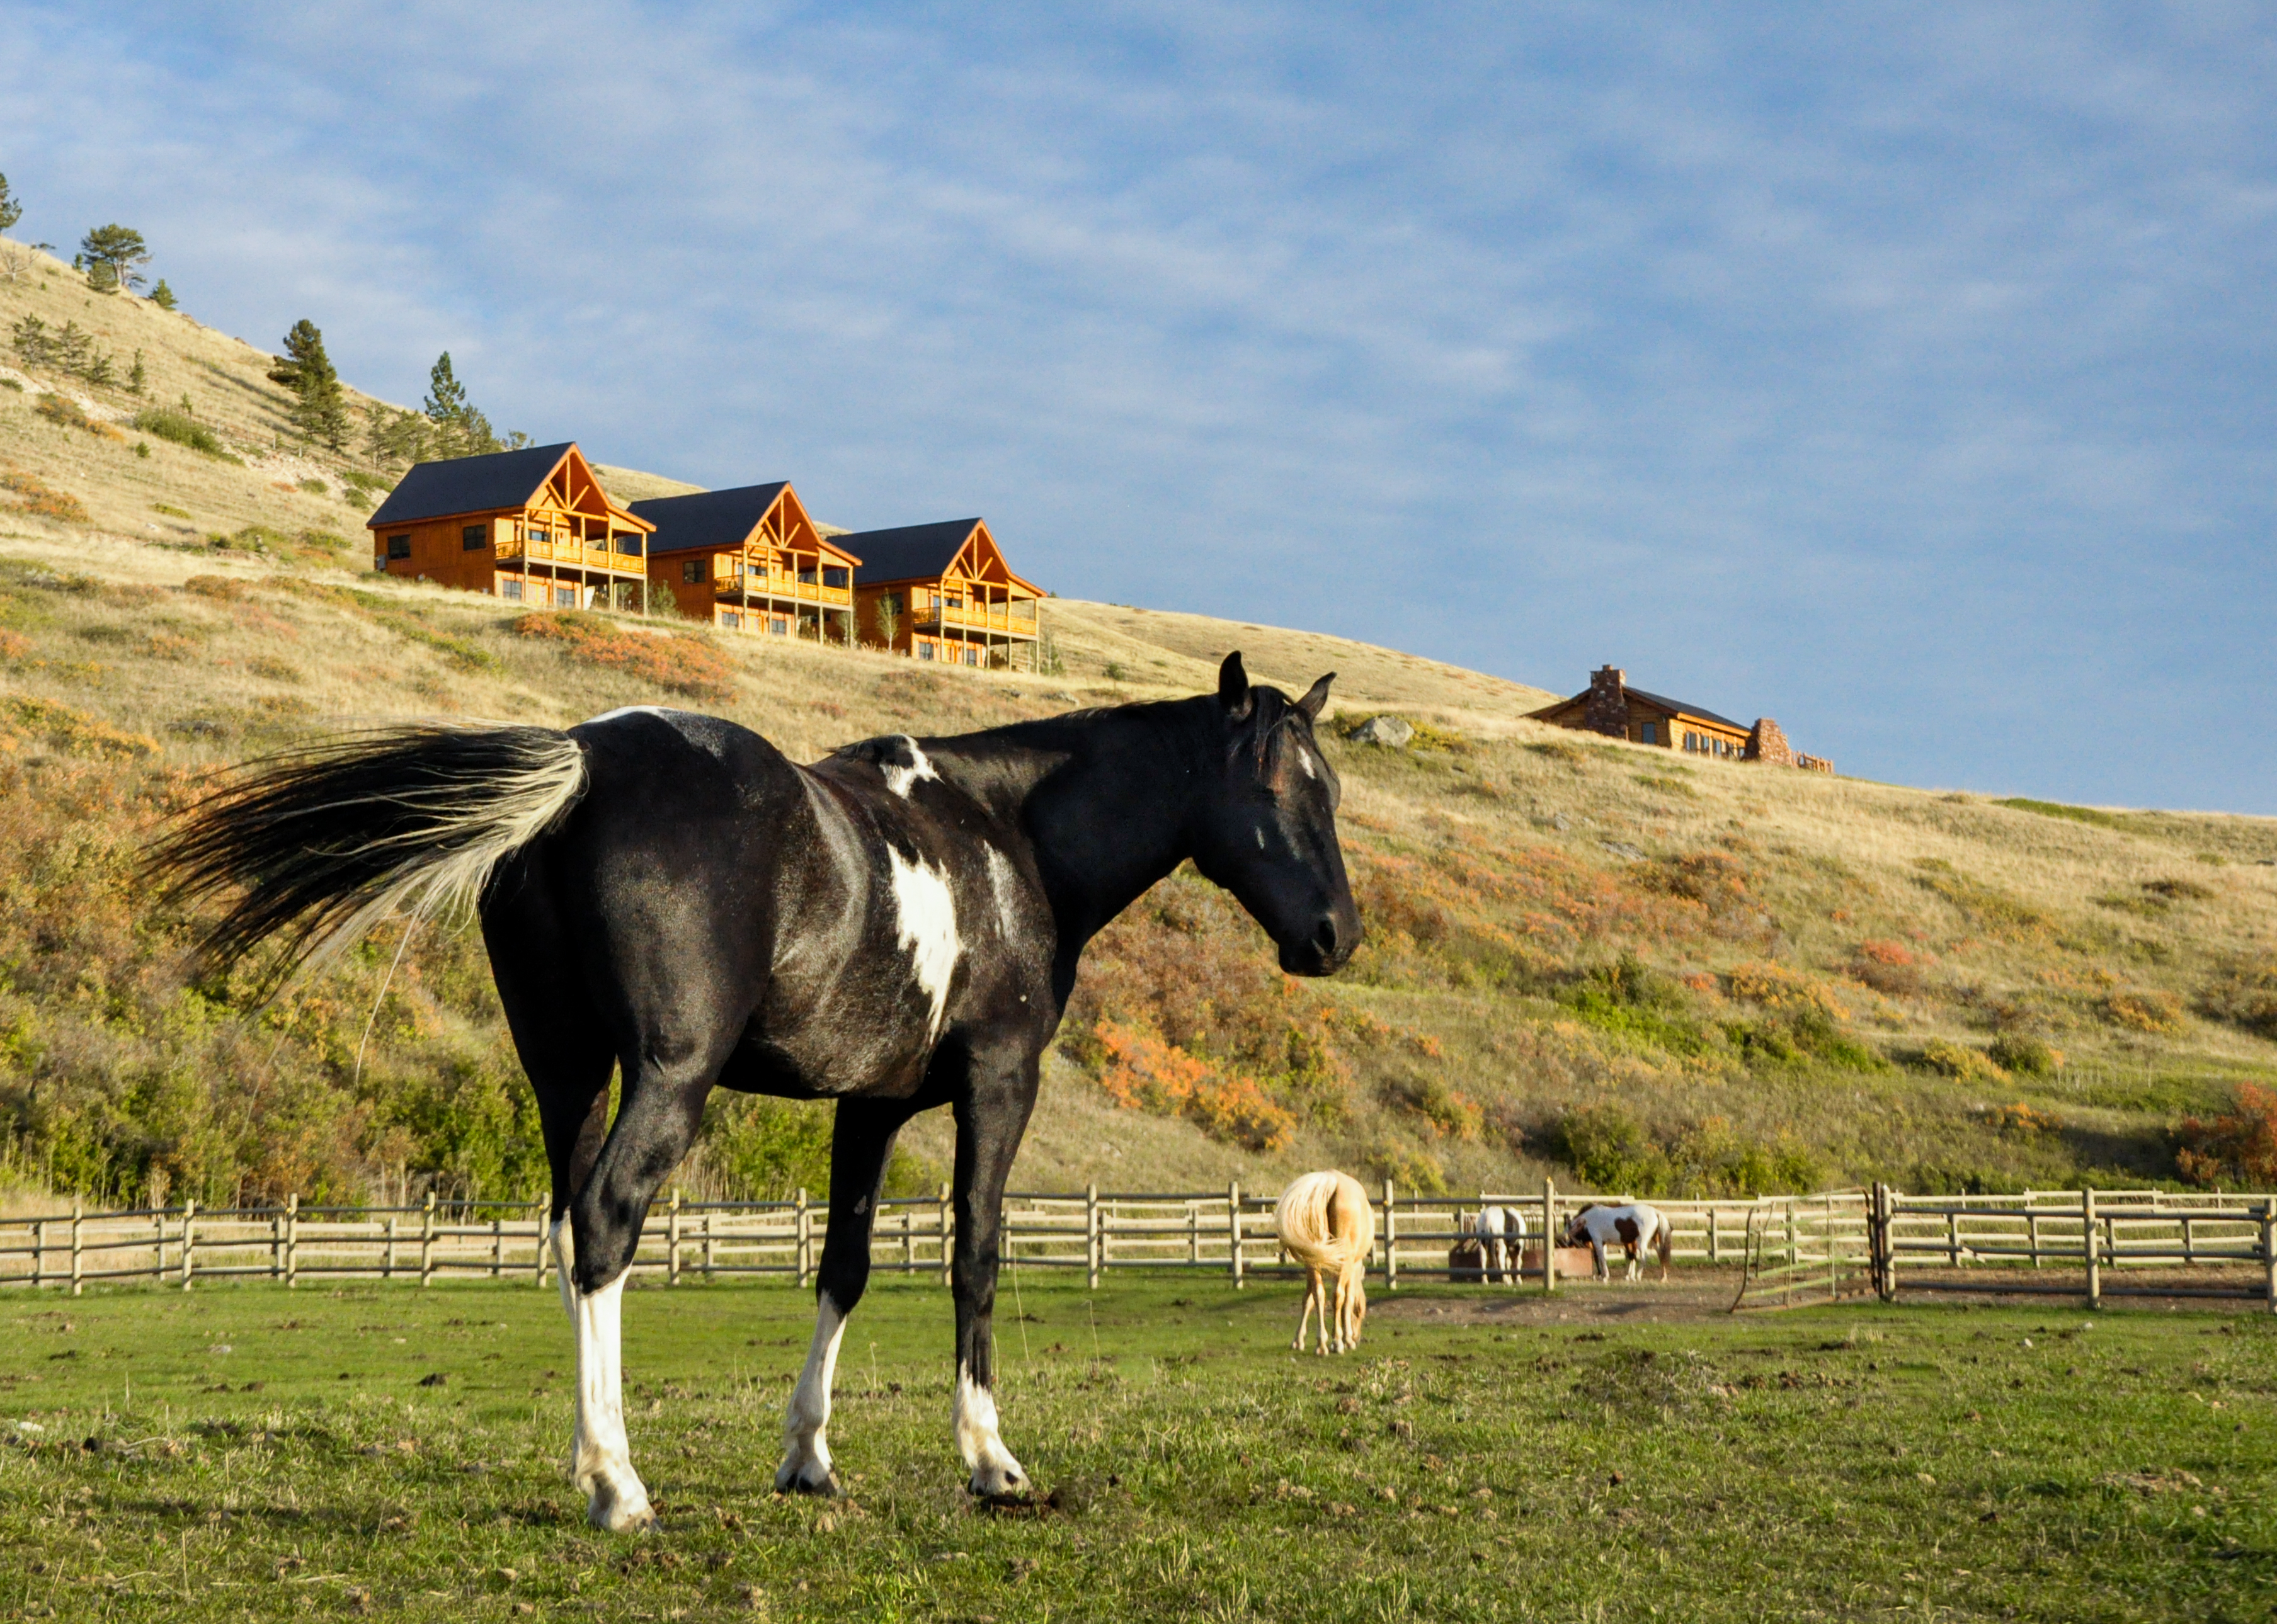 Horses and Cabins